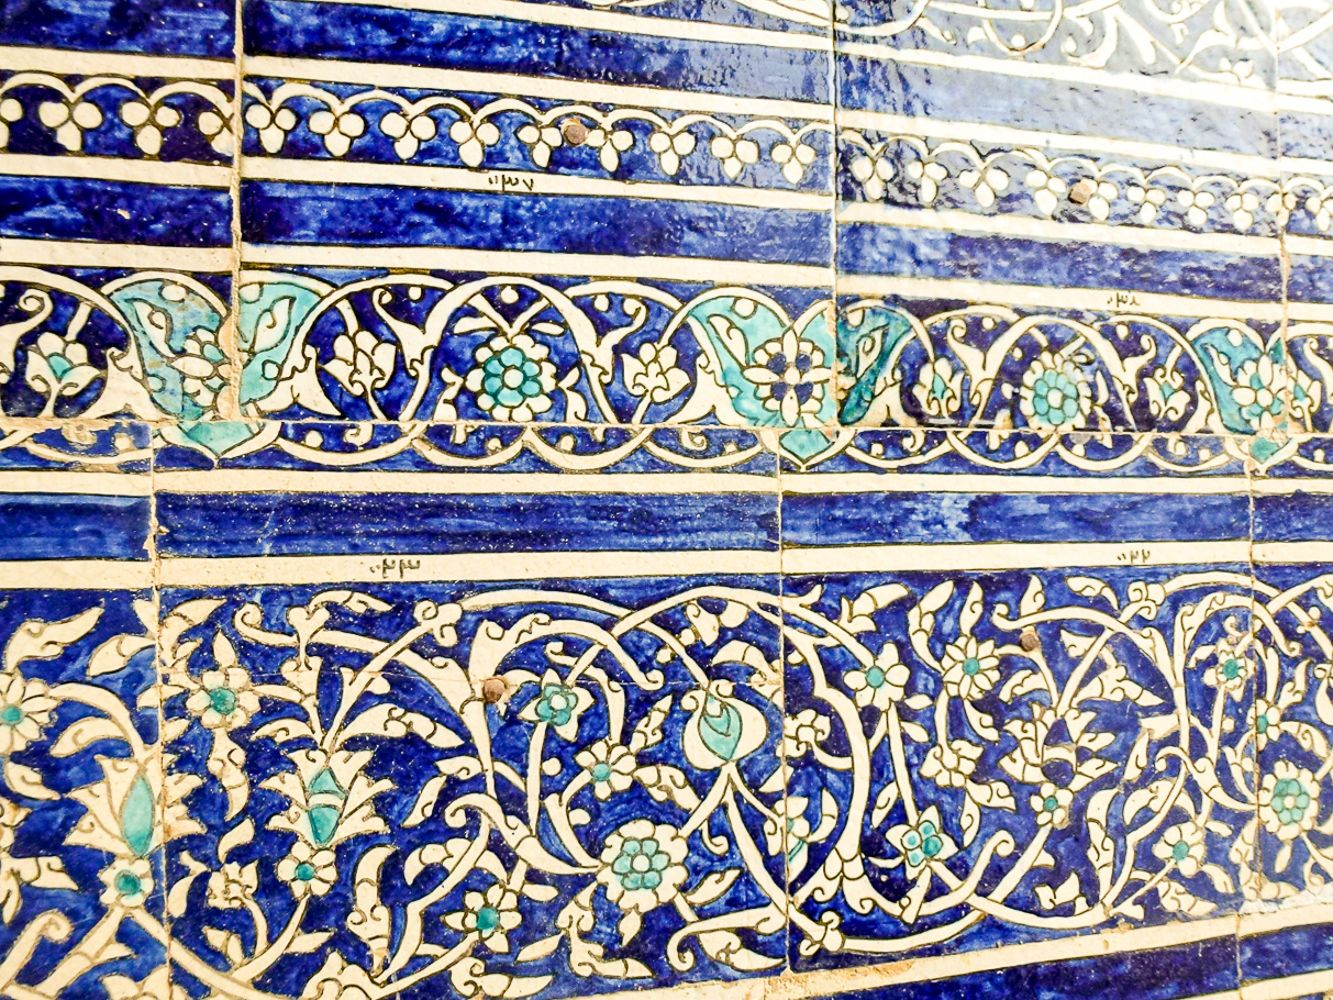 decortation detail on blue tiles of khiva palace in uzbekistan travel